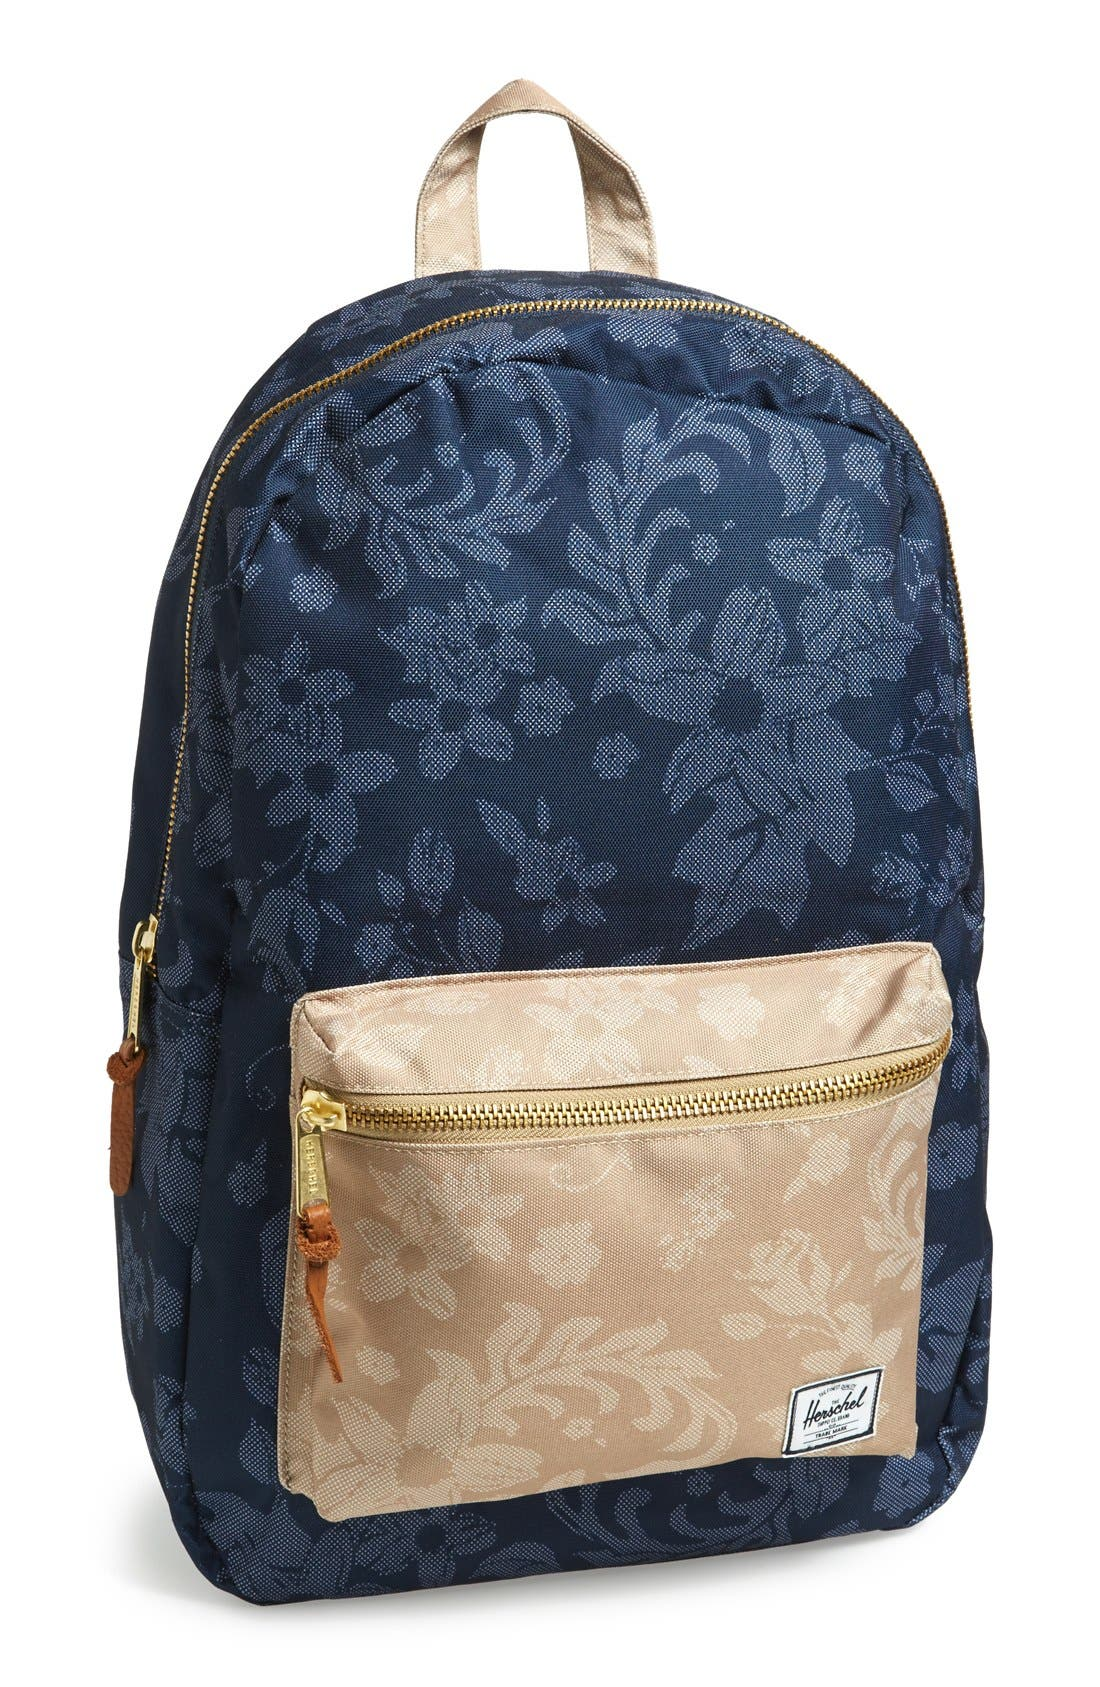 Alternate Image 1 Selected - Herschel Supply Co. 'Settlement' Backpack